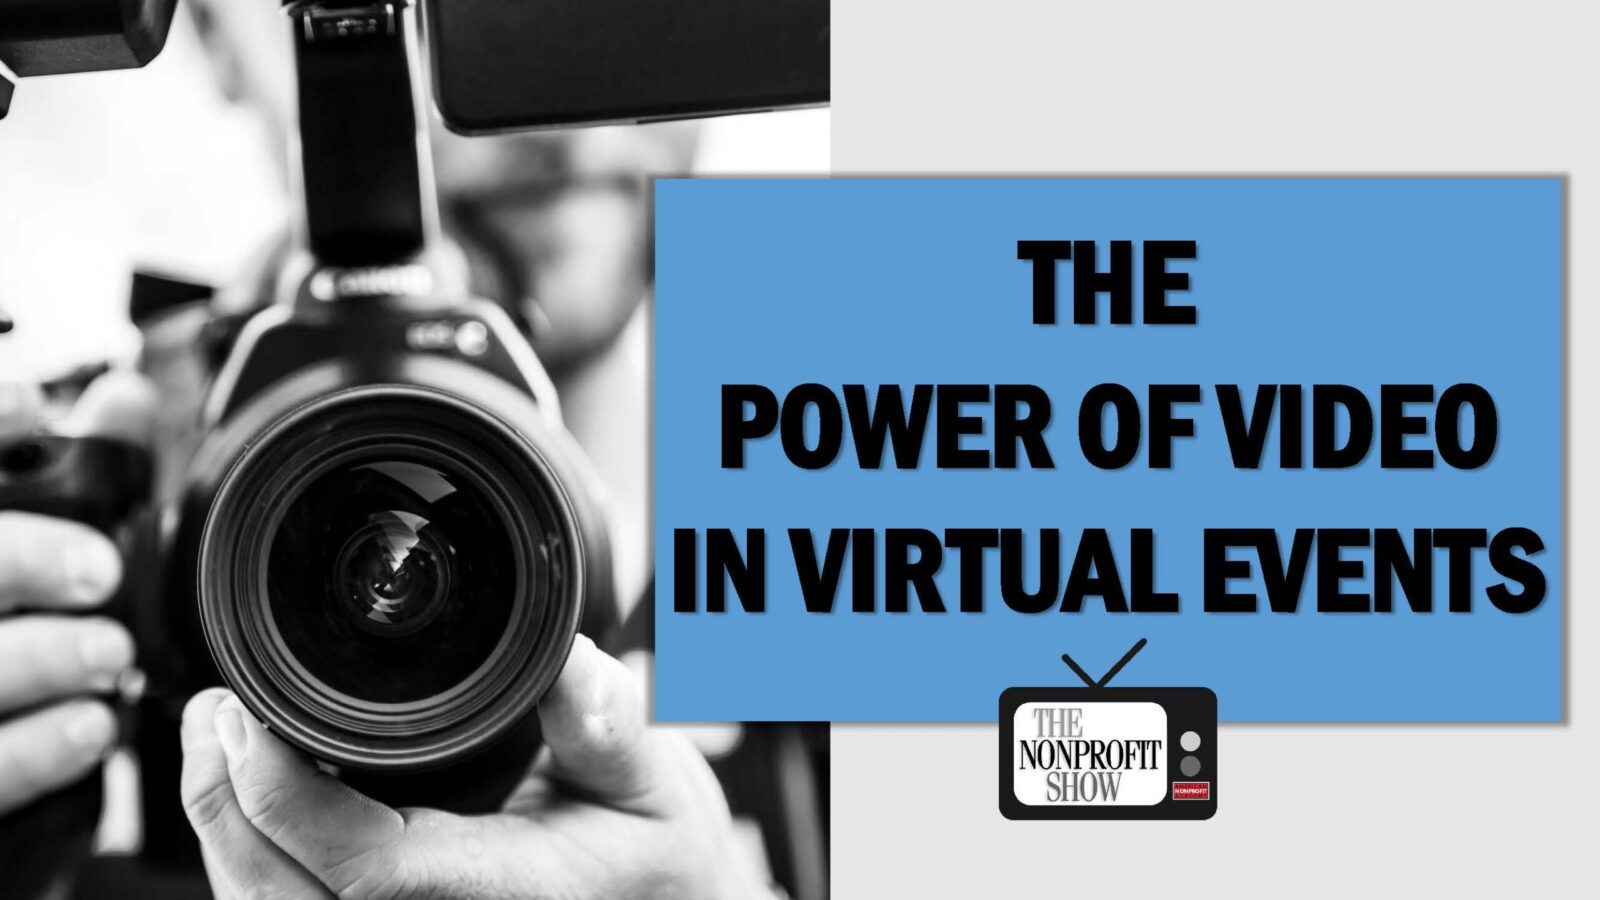 The Power of Video in Virtual Events